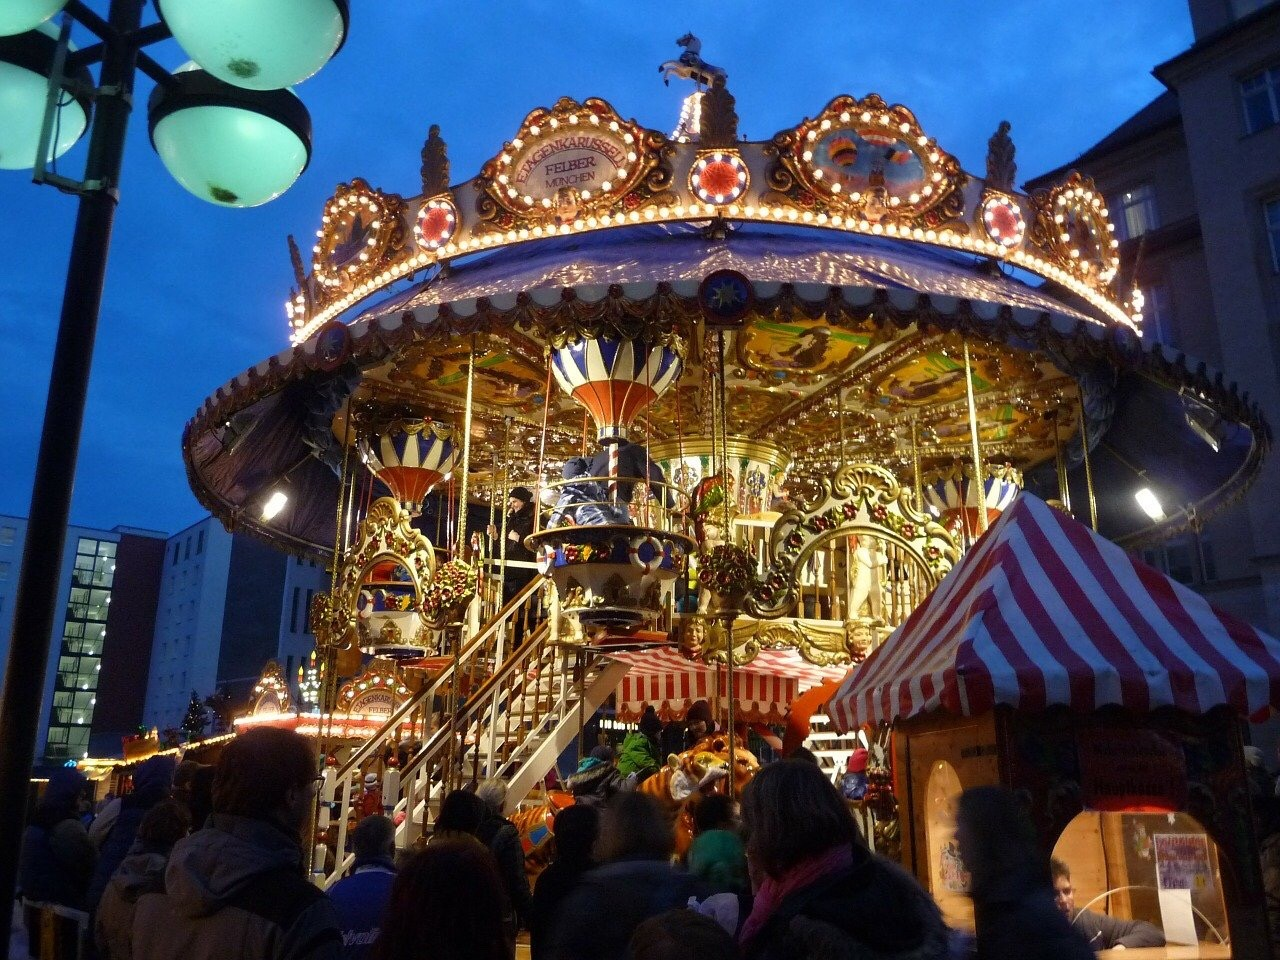 German Christmas Carousel